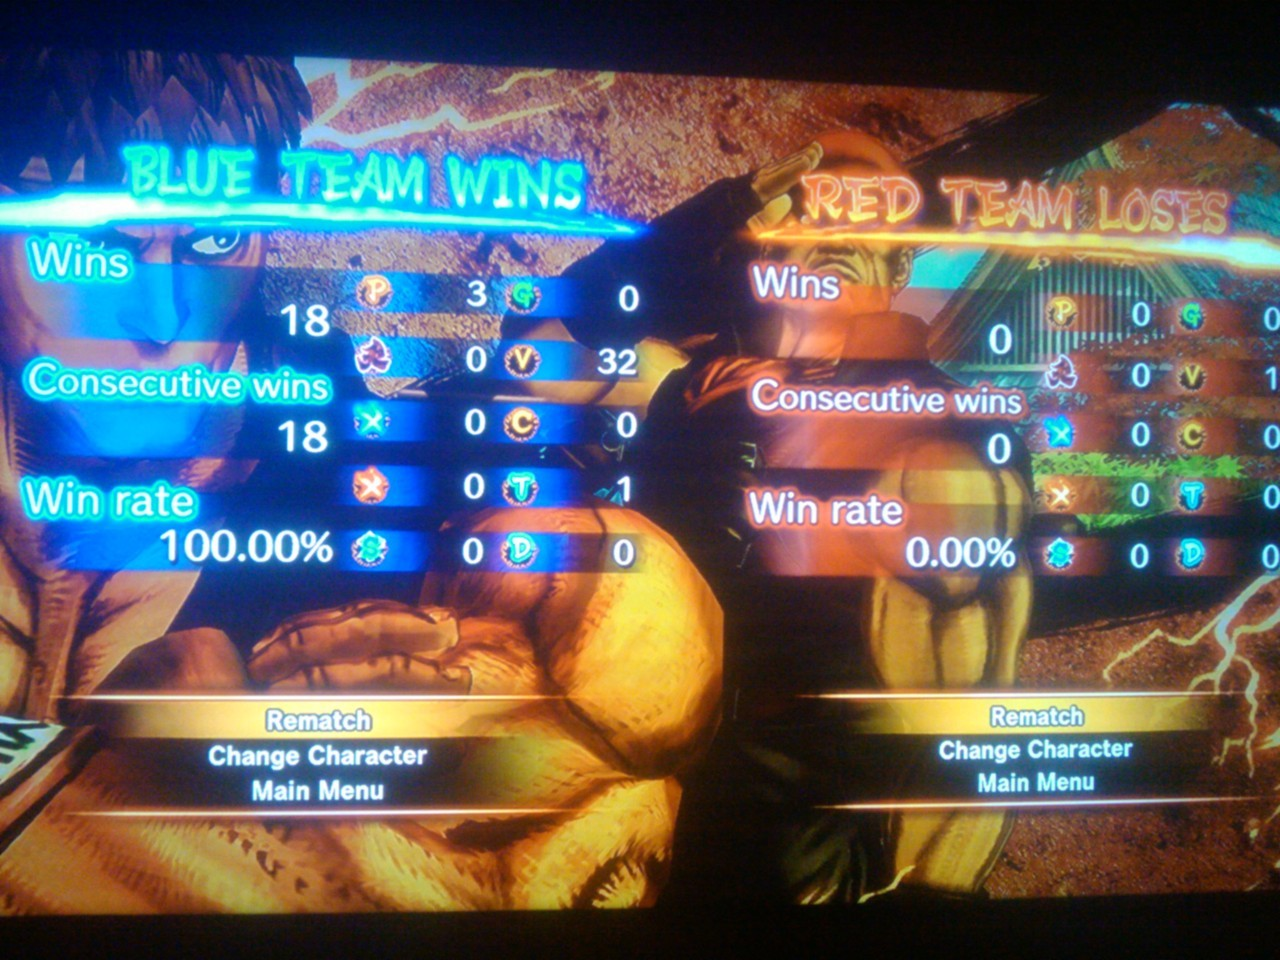 bodied our family friend's son 18-0 in street fighter x tekken. HILARIOUS.